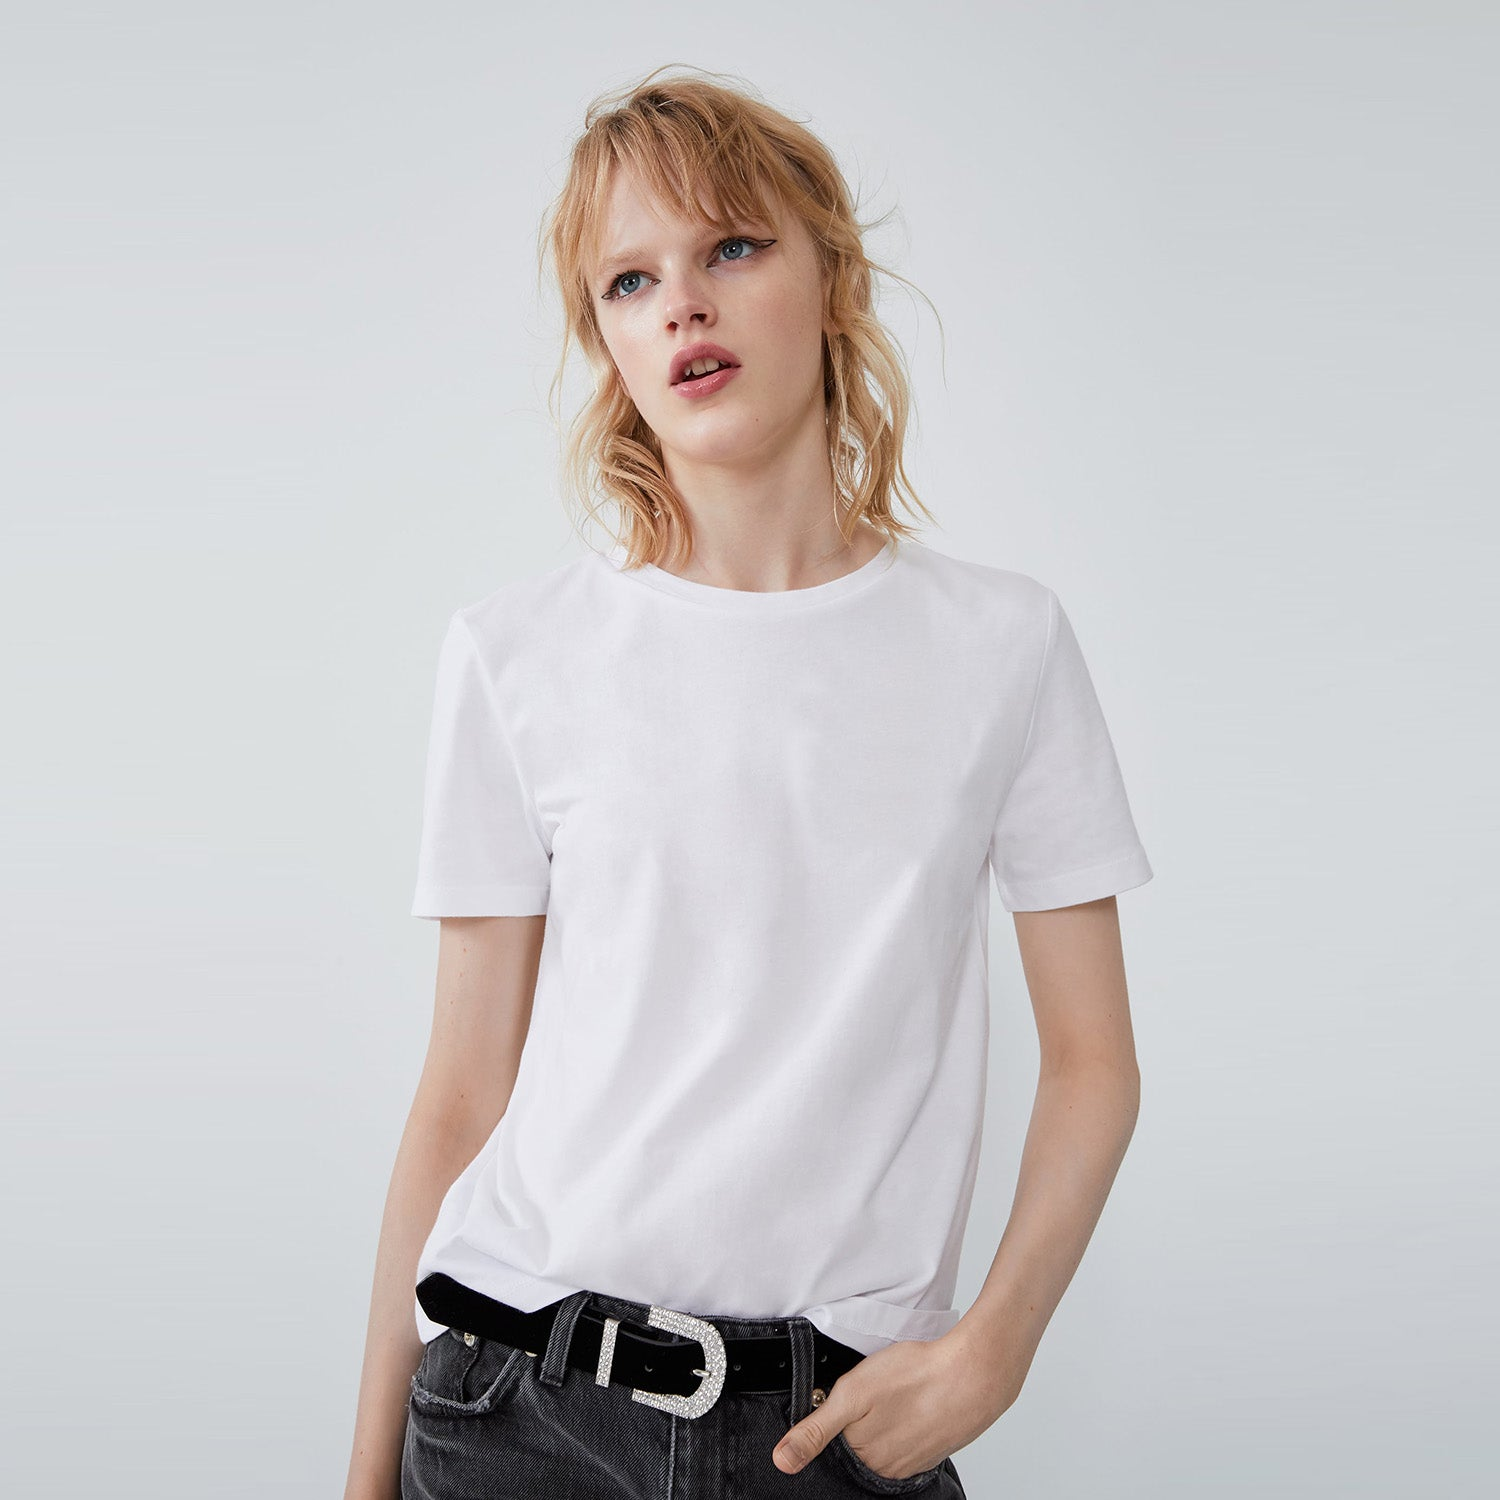 brandsego - Popular Sport Viscose Crew Neck Tee Shirt For Women-White-BE9703